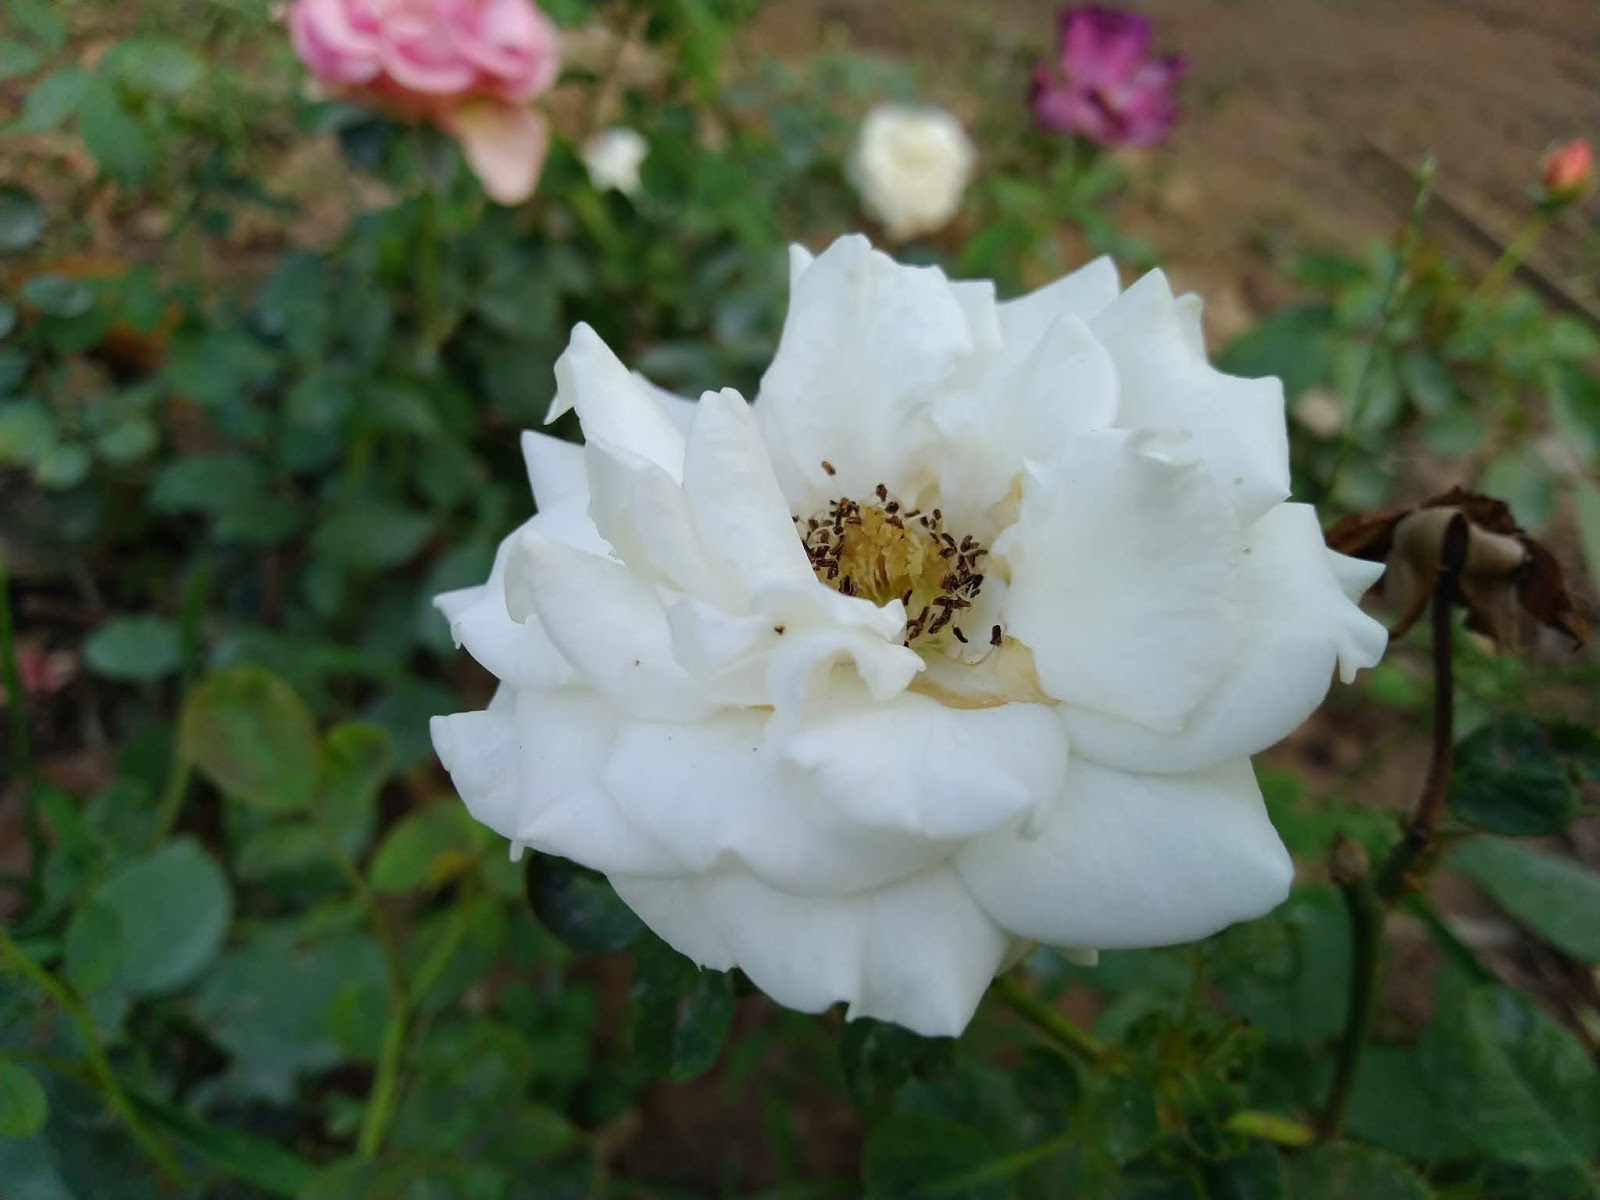 Asus Zenfone Max Pro M1 camera test samples review 2